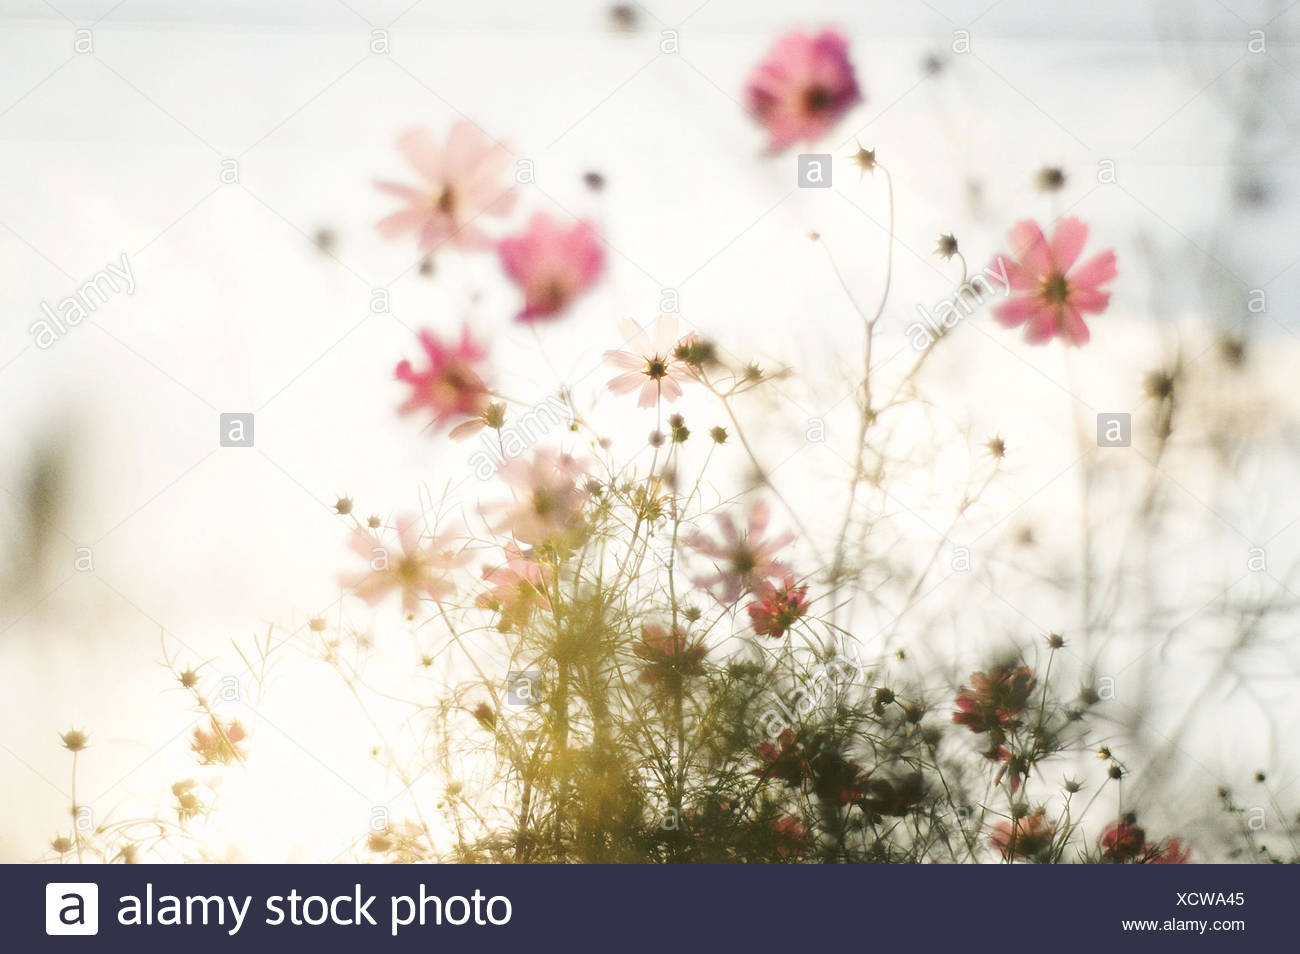 Pink Flowers - Stock Image